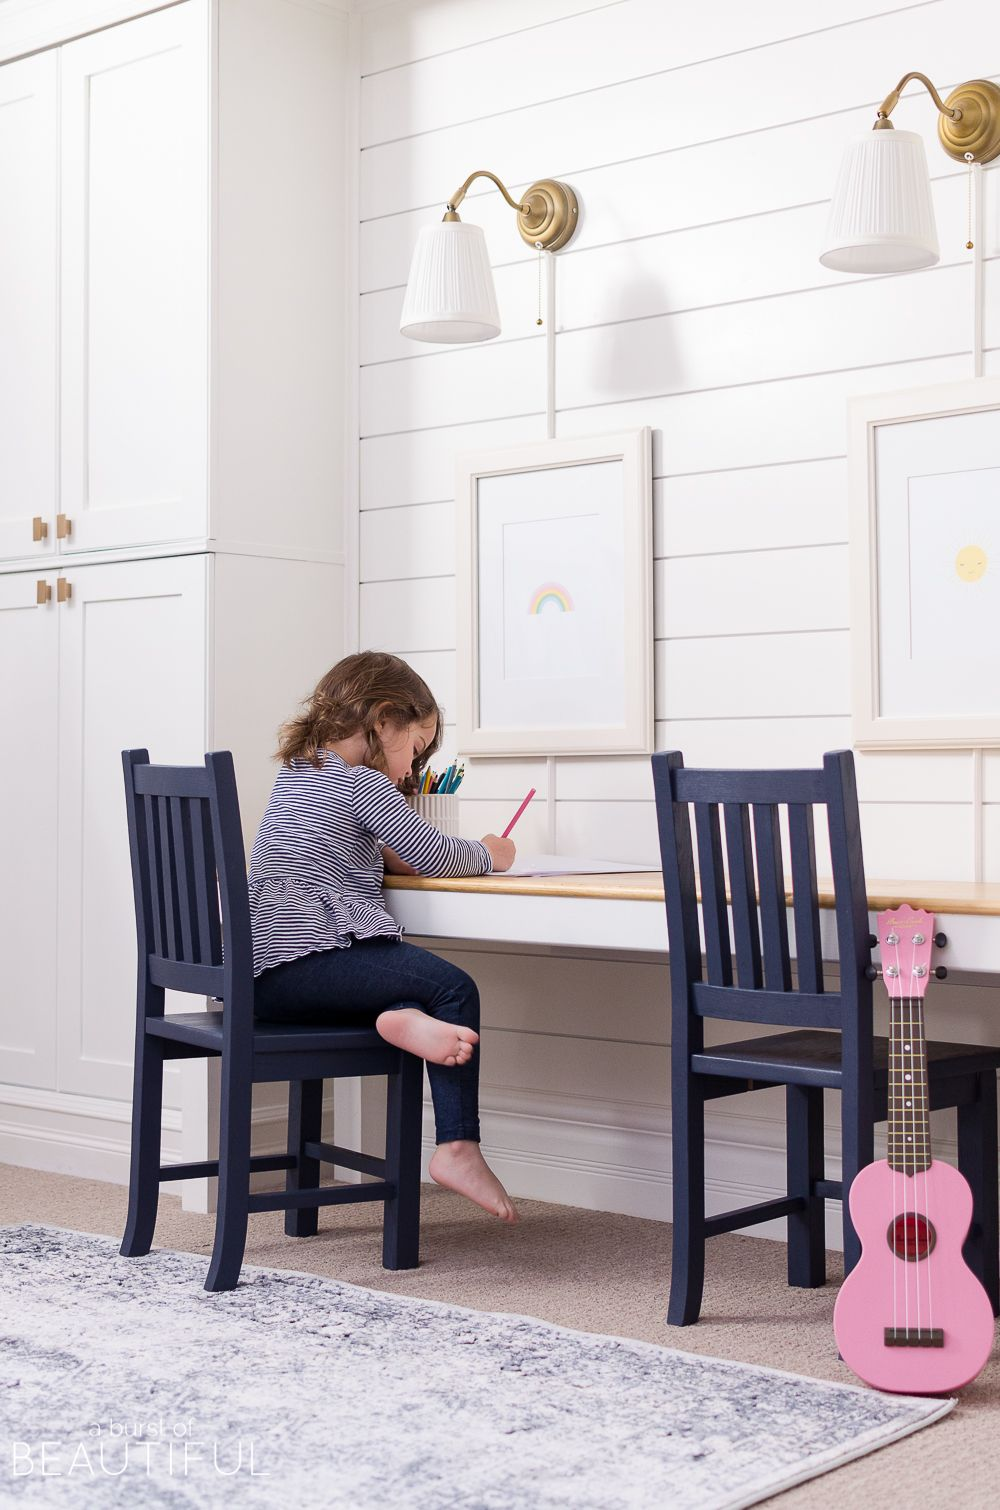 Hints Of Blue Pop Against Bright White Walls In This Cheerful Playroom,  Featuring A Kidu0027s